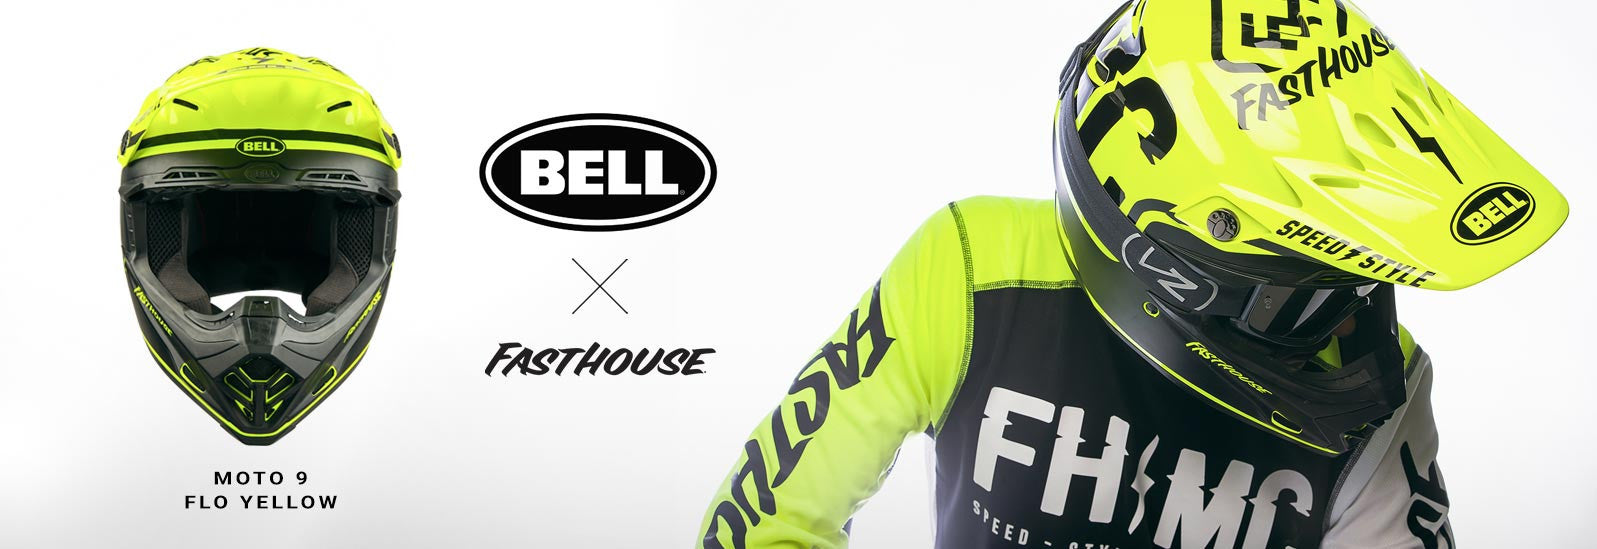 Bell + Fasthouse Moto 9